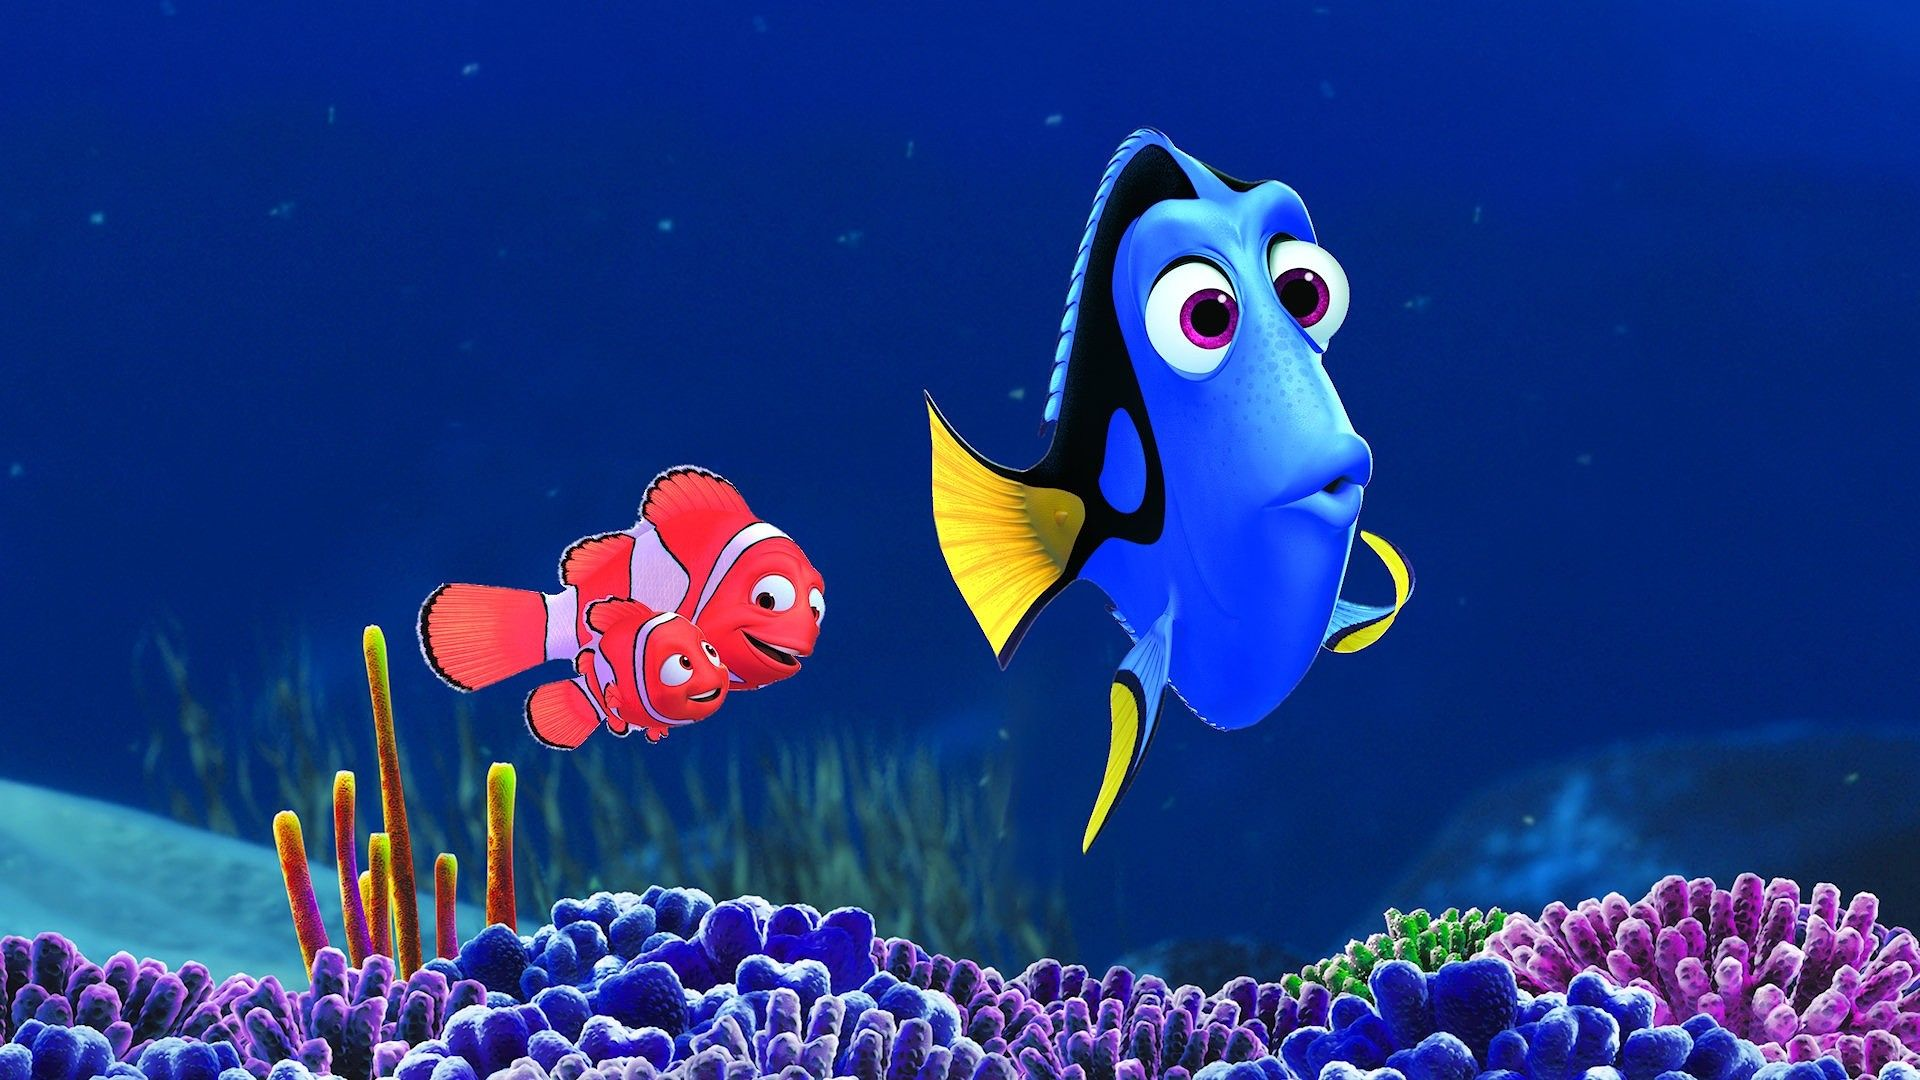 Finding dory film pictures